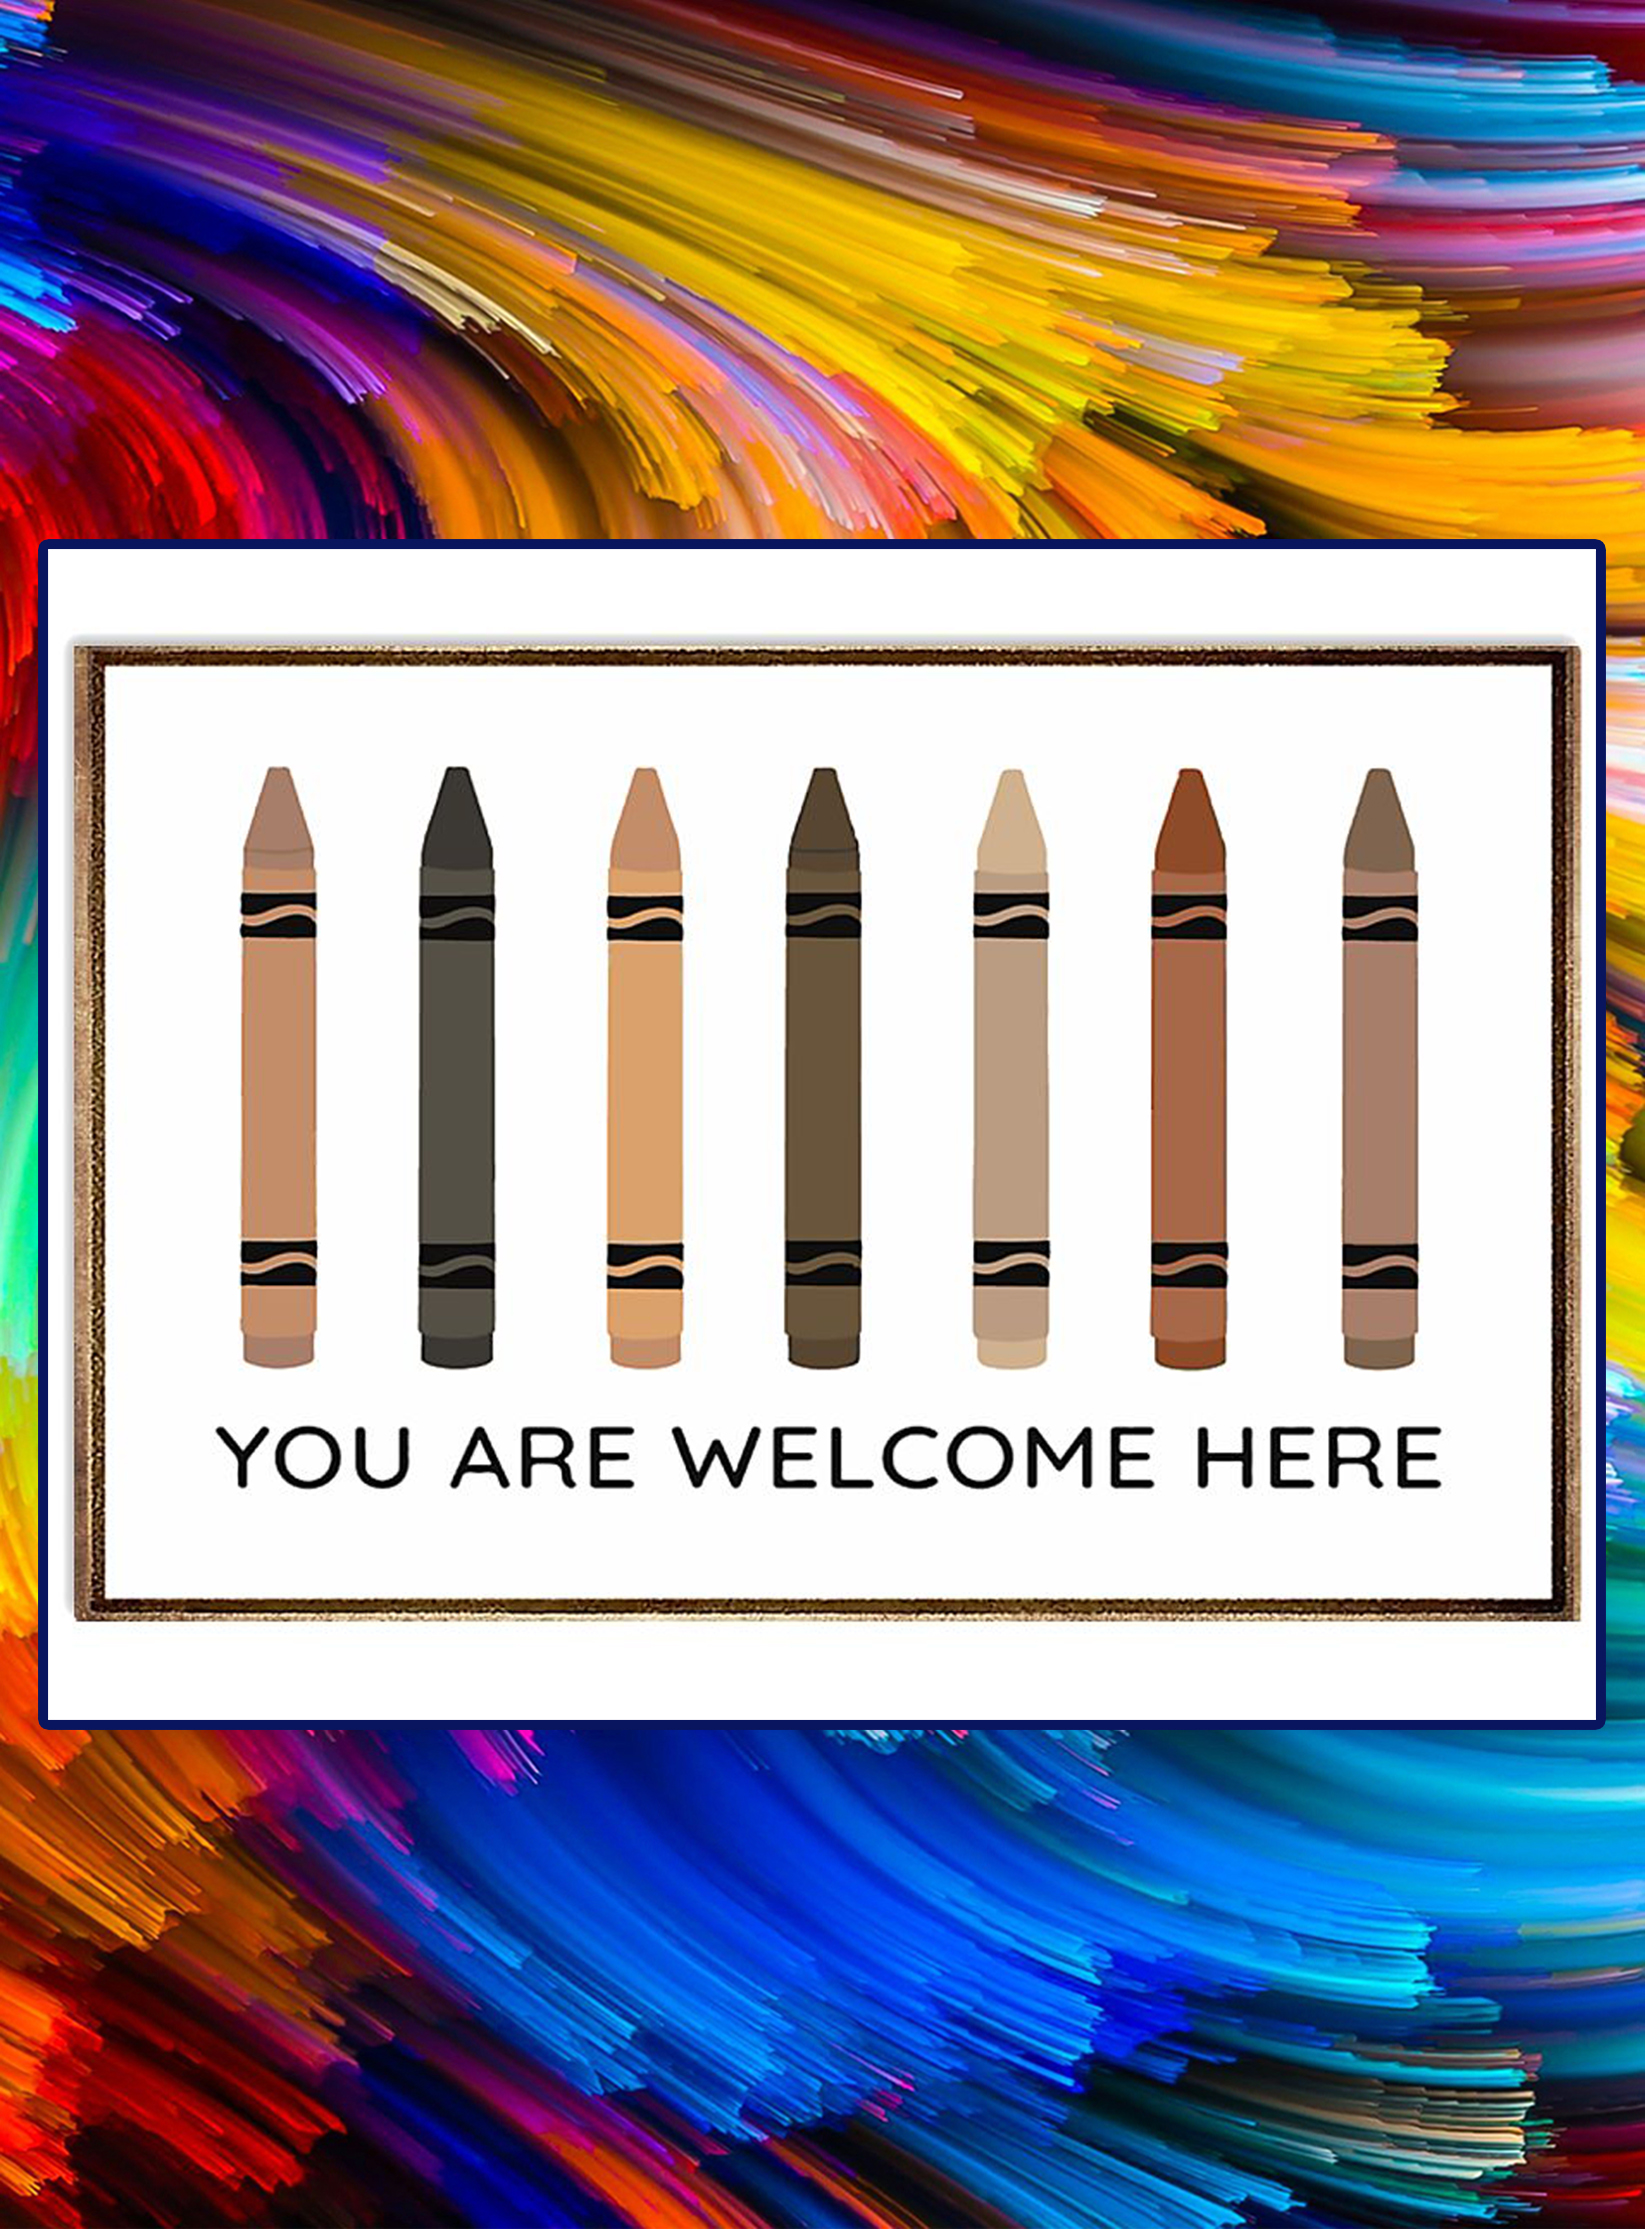 Crayons You are welcome here poster